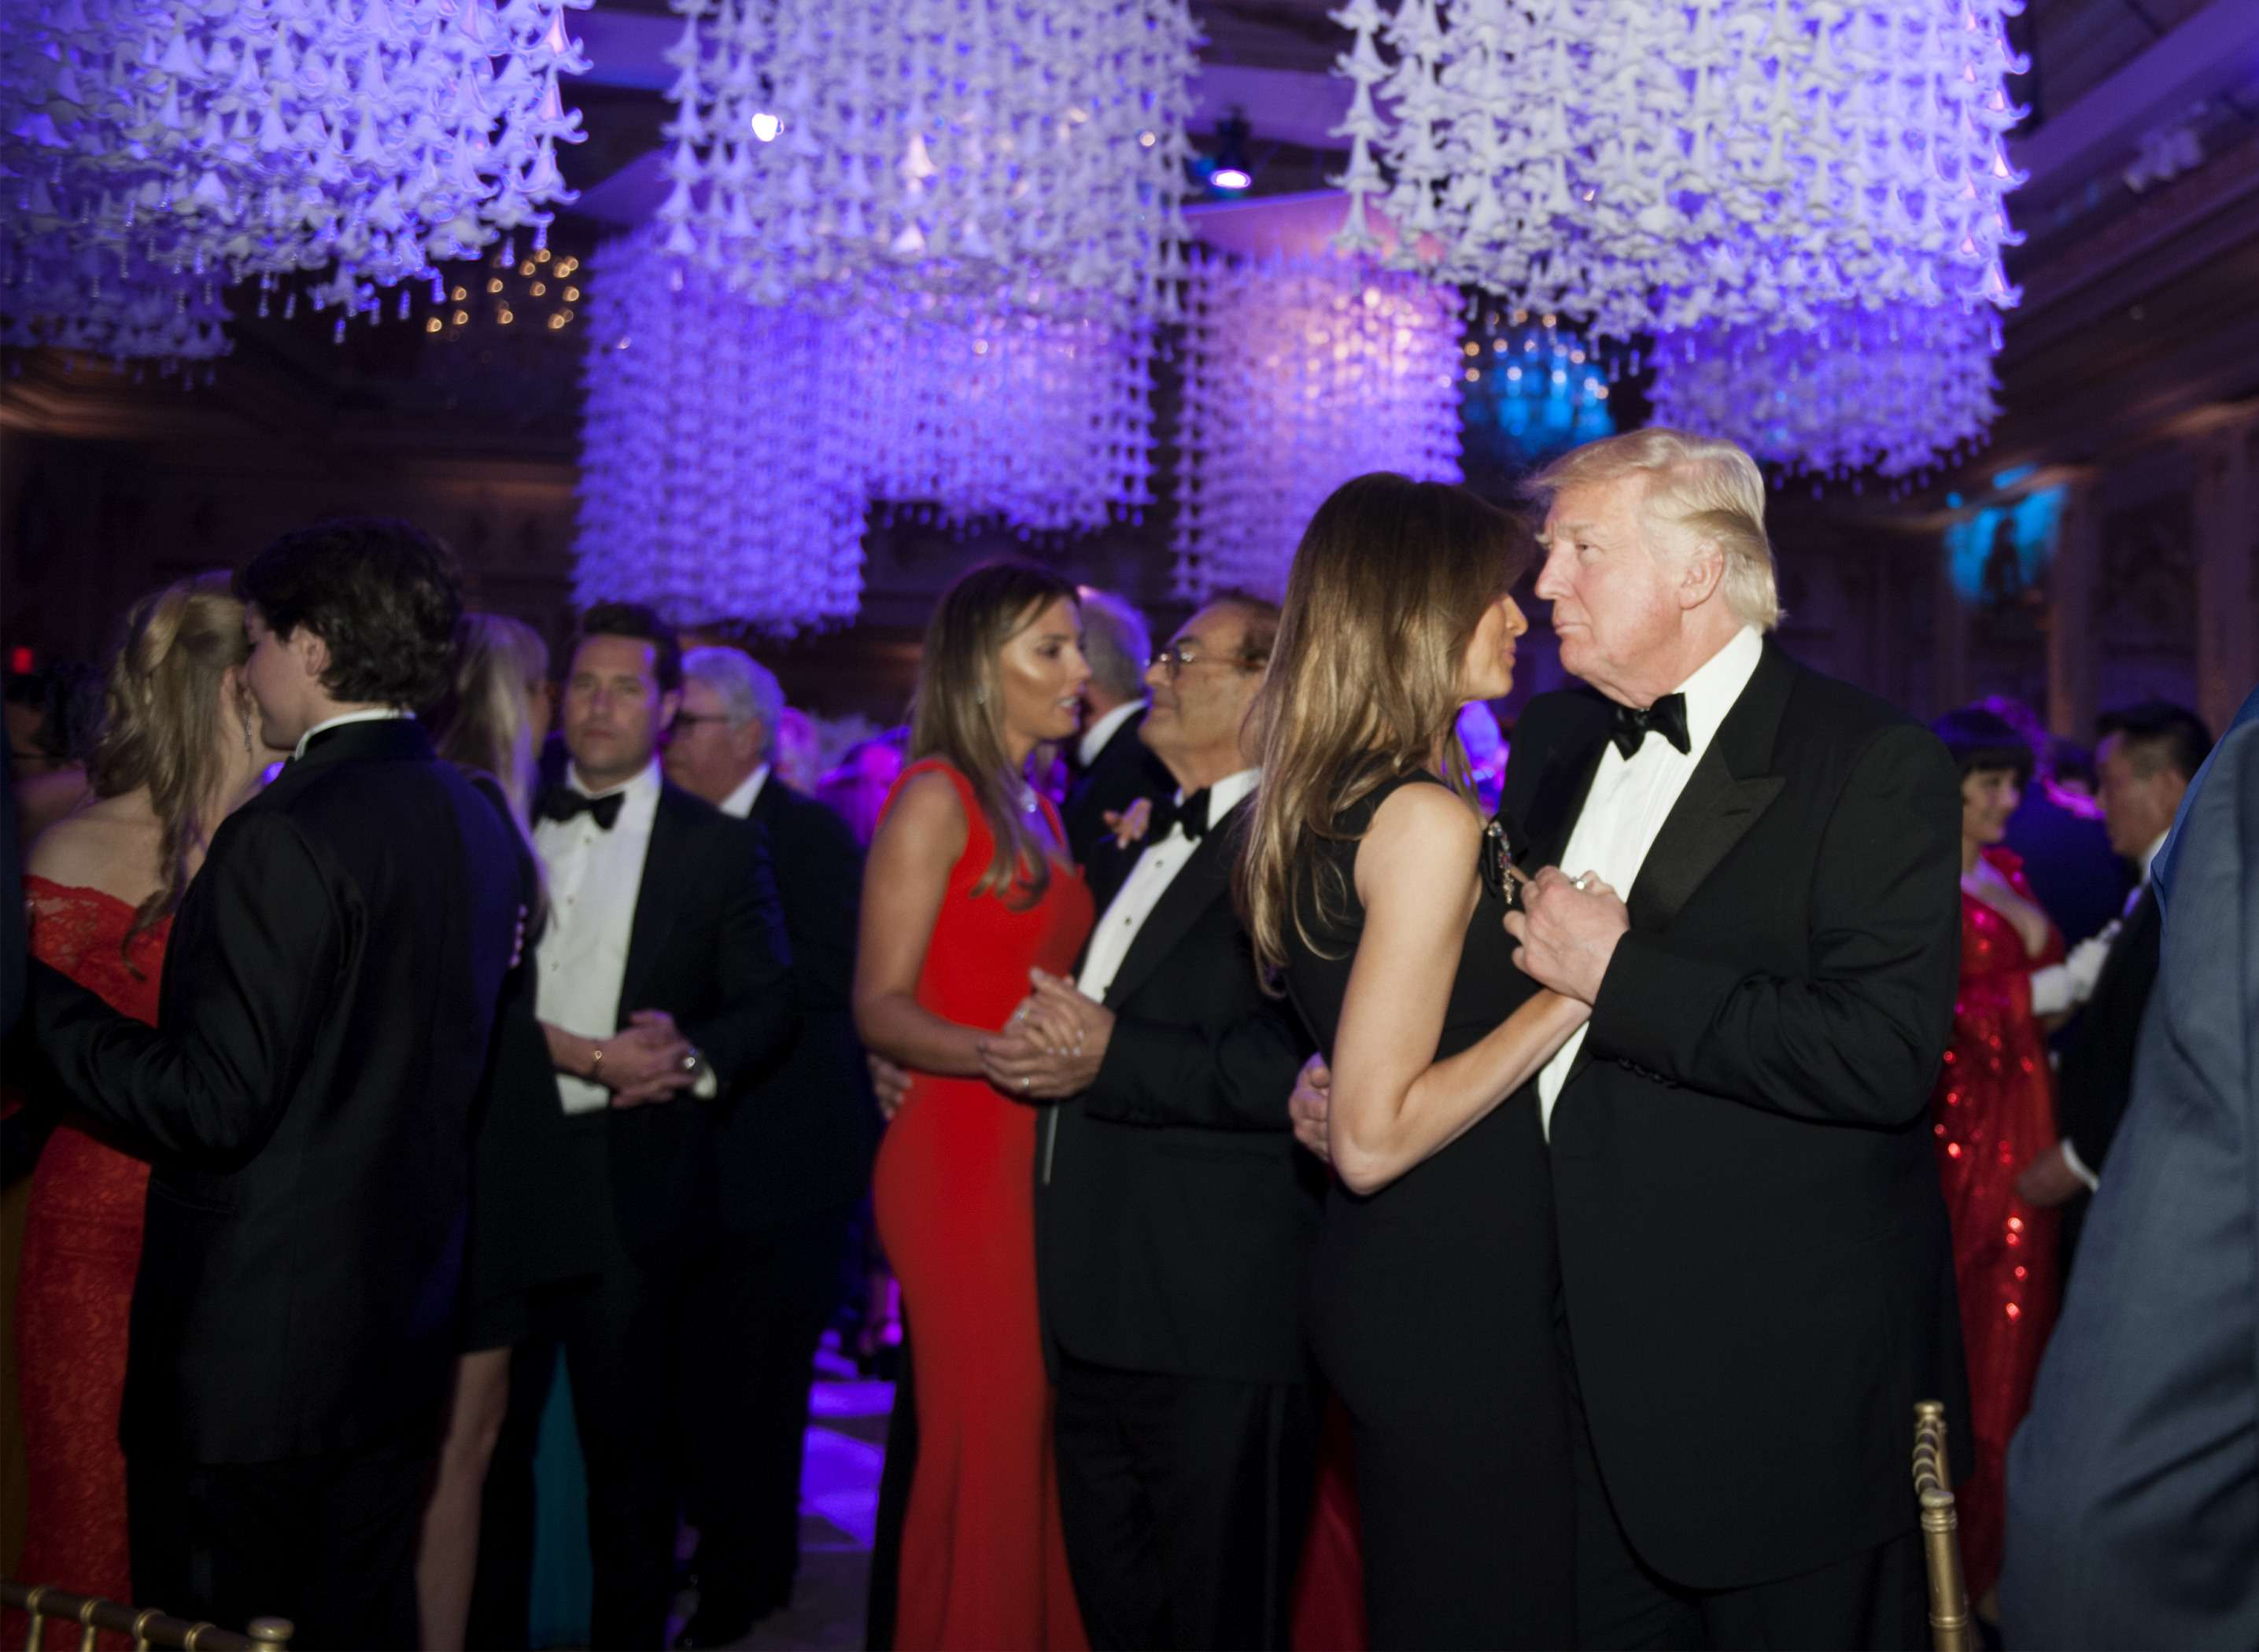 New Year's 2017 at Mar-a-Lago Club